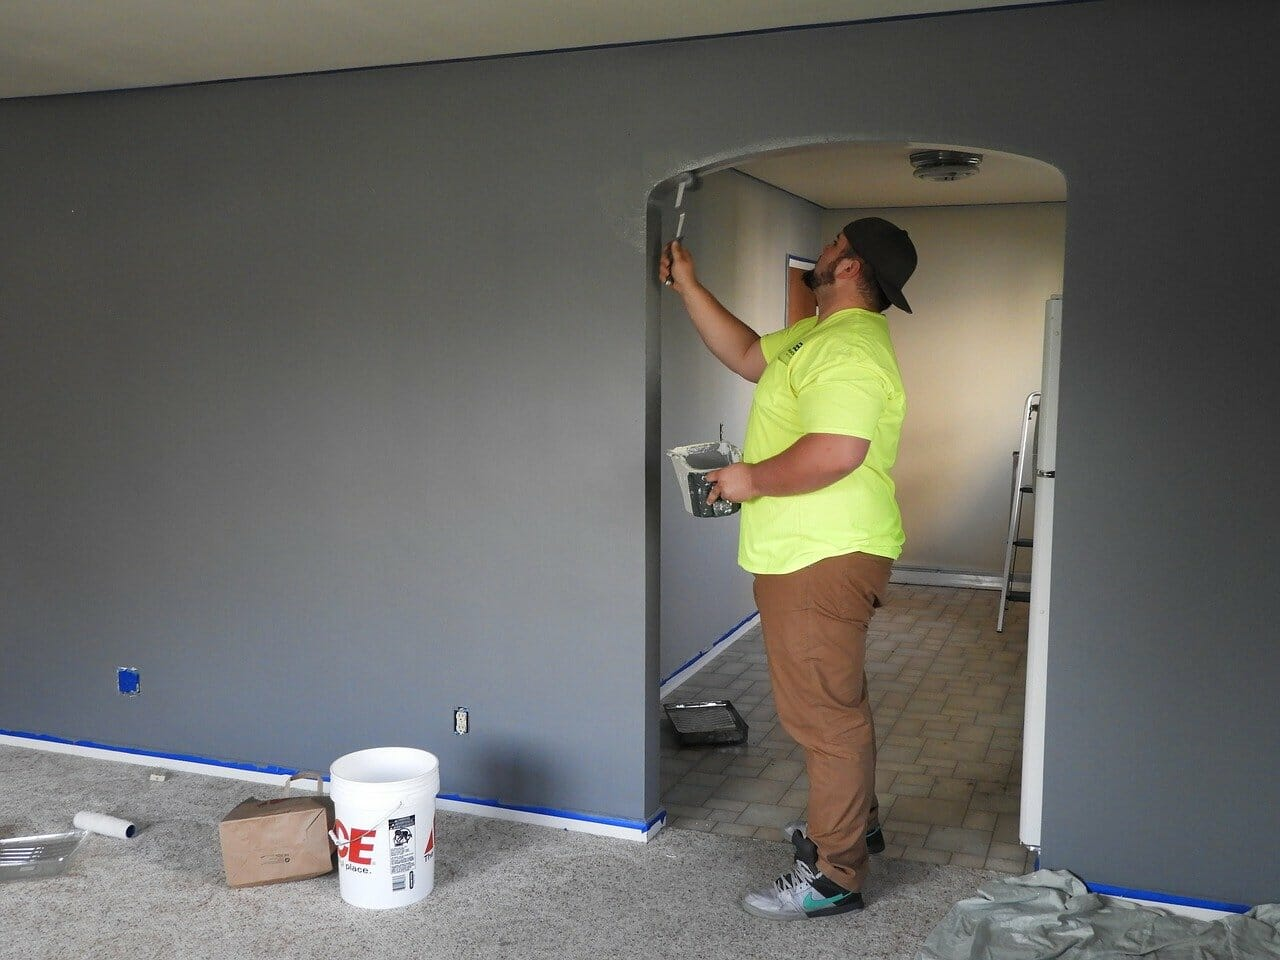 Budget-Friendly Home Improvement Ideas in 2021